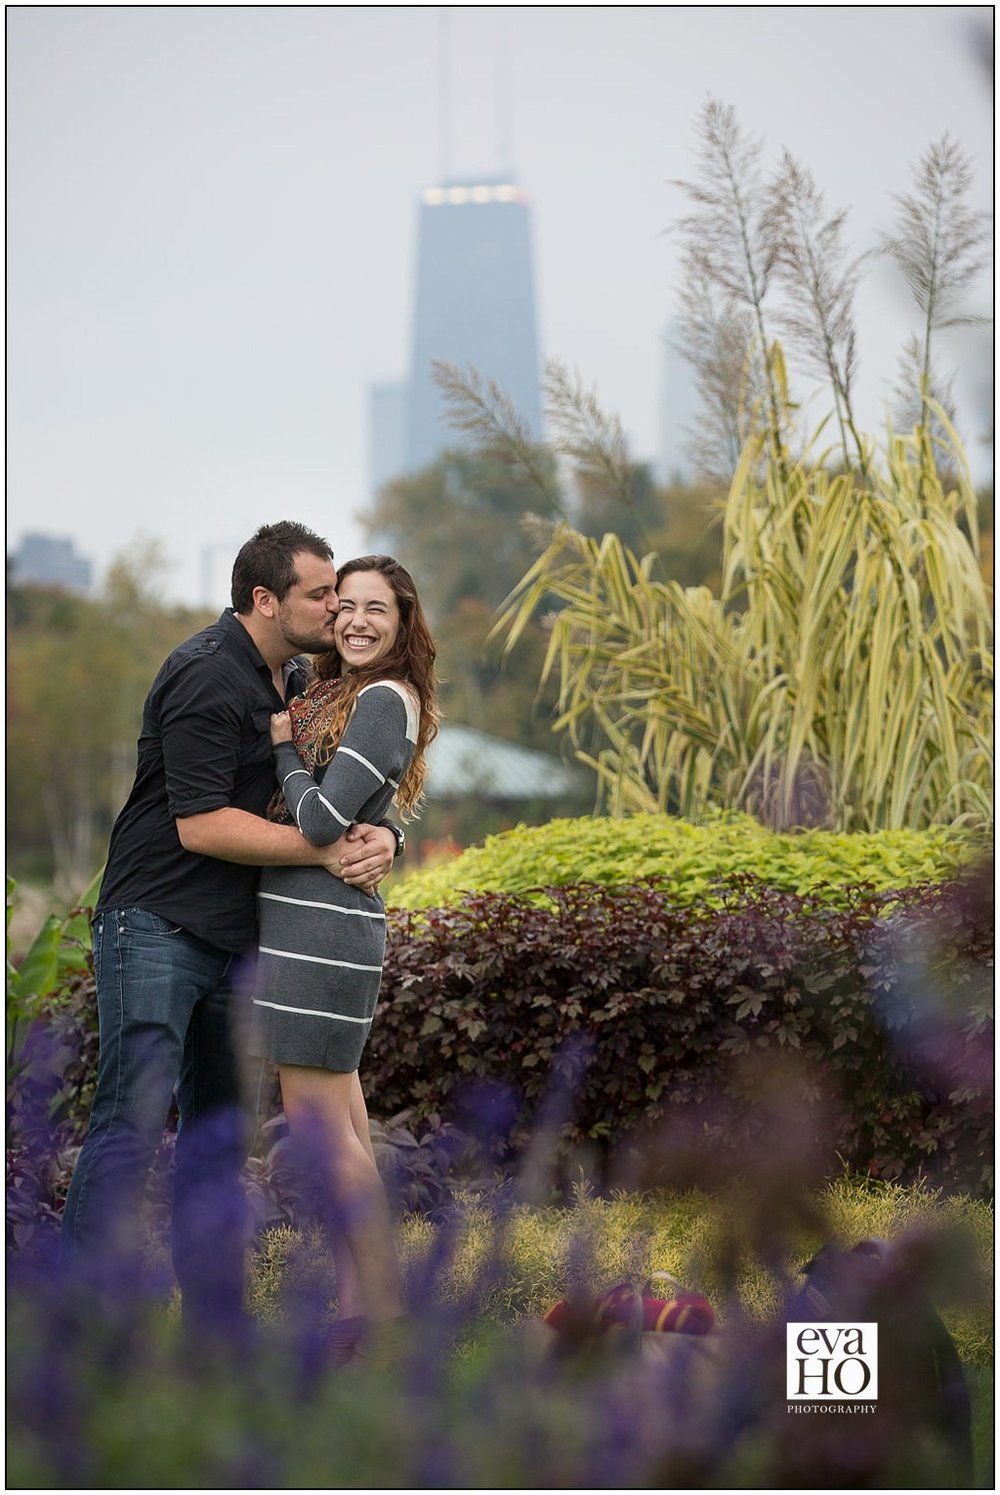 Alison and Jim's engagement session in Lincoln Park.